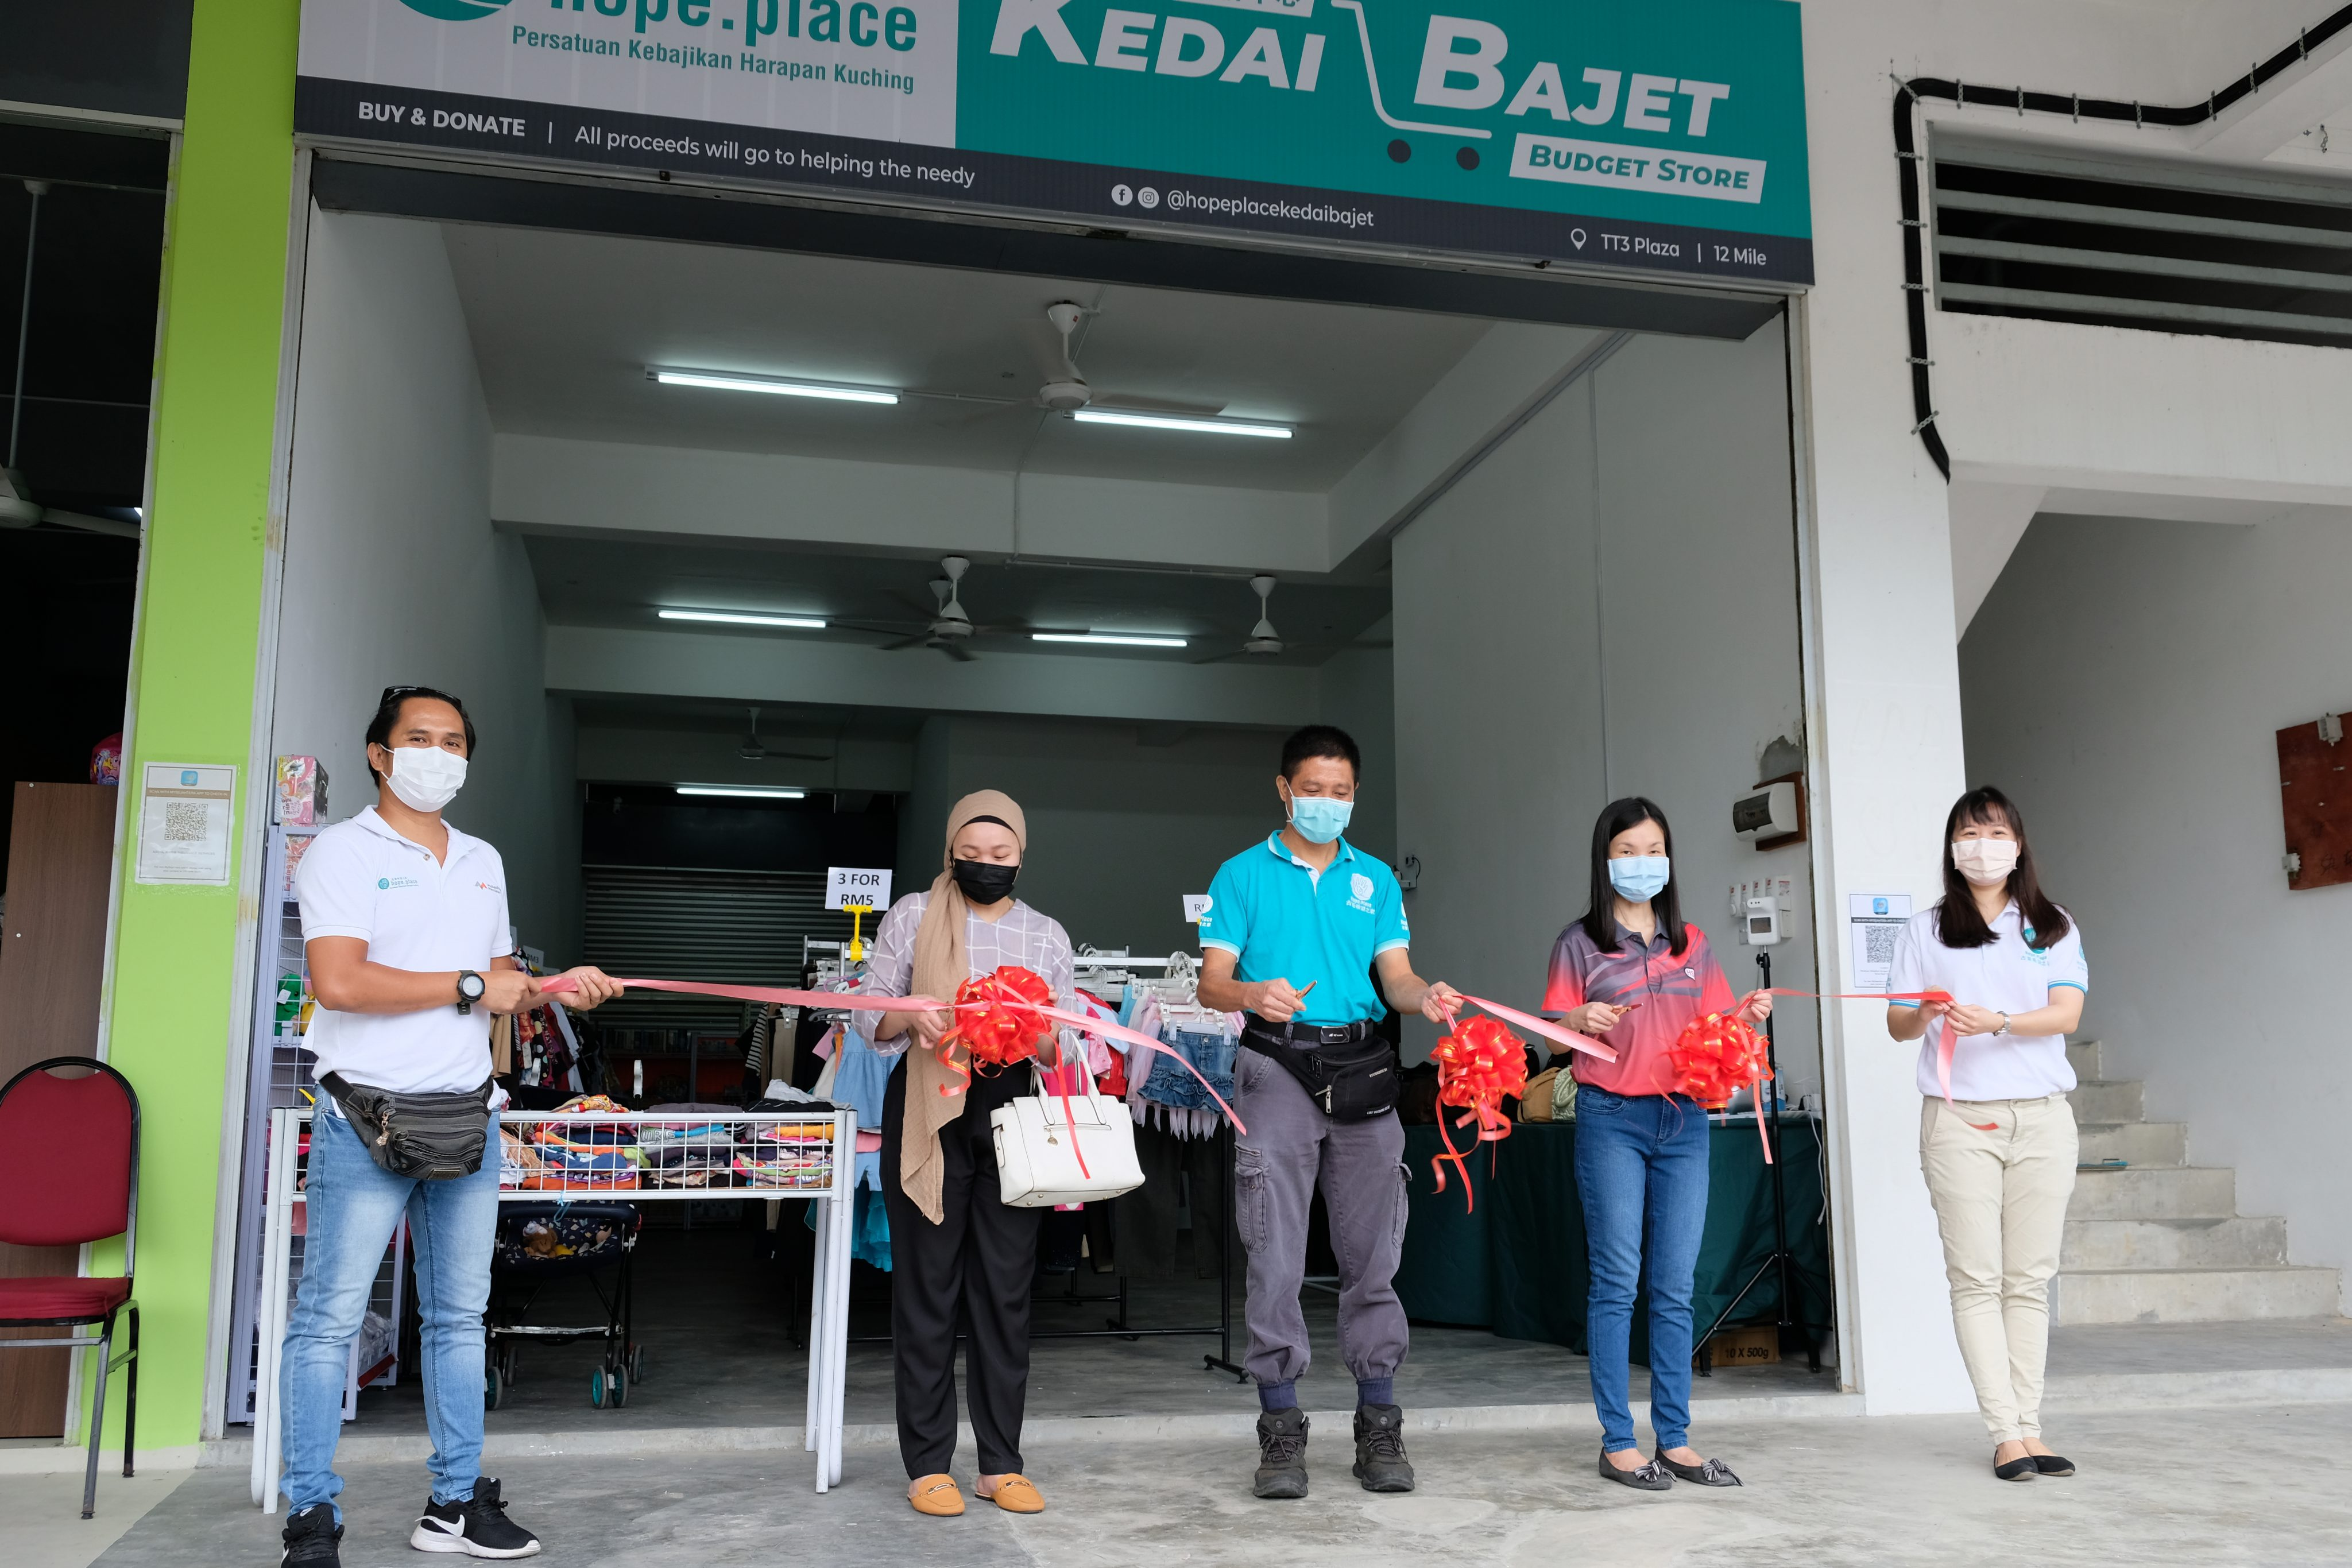 (From second left) HSL corporate communications officer Lisa Ikram, Hope Place's Kelvin Wan and  HSL's Shirley Loo during the opening ceremony at Kedai Bajet Mile 12, Pan Borneo Highway, on Monday.